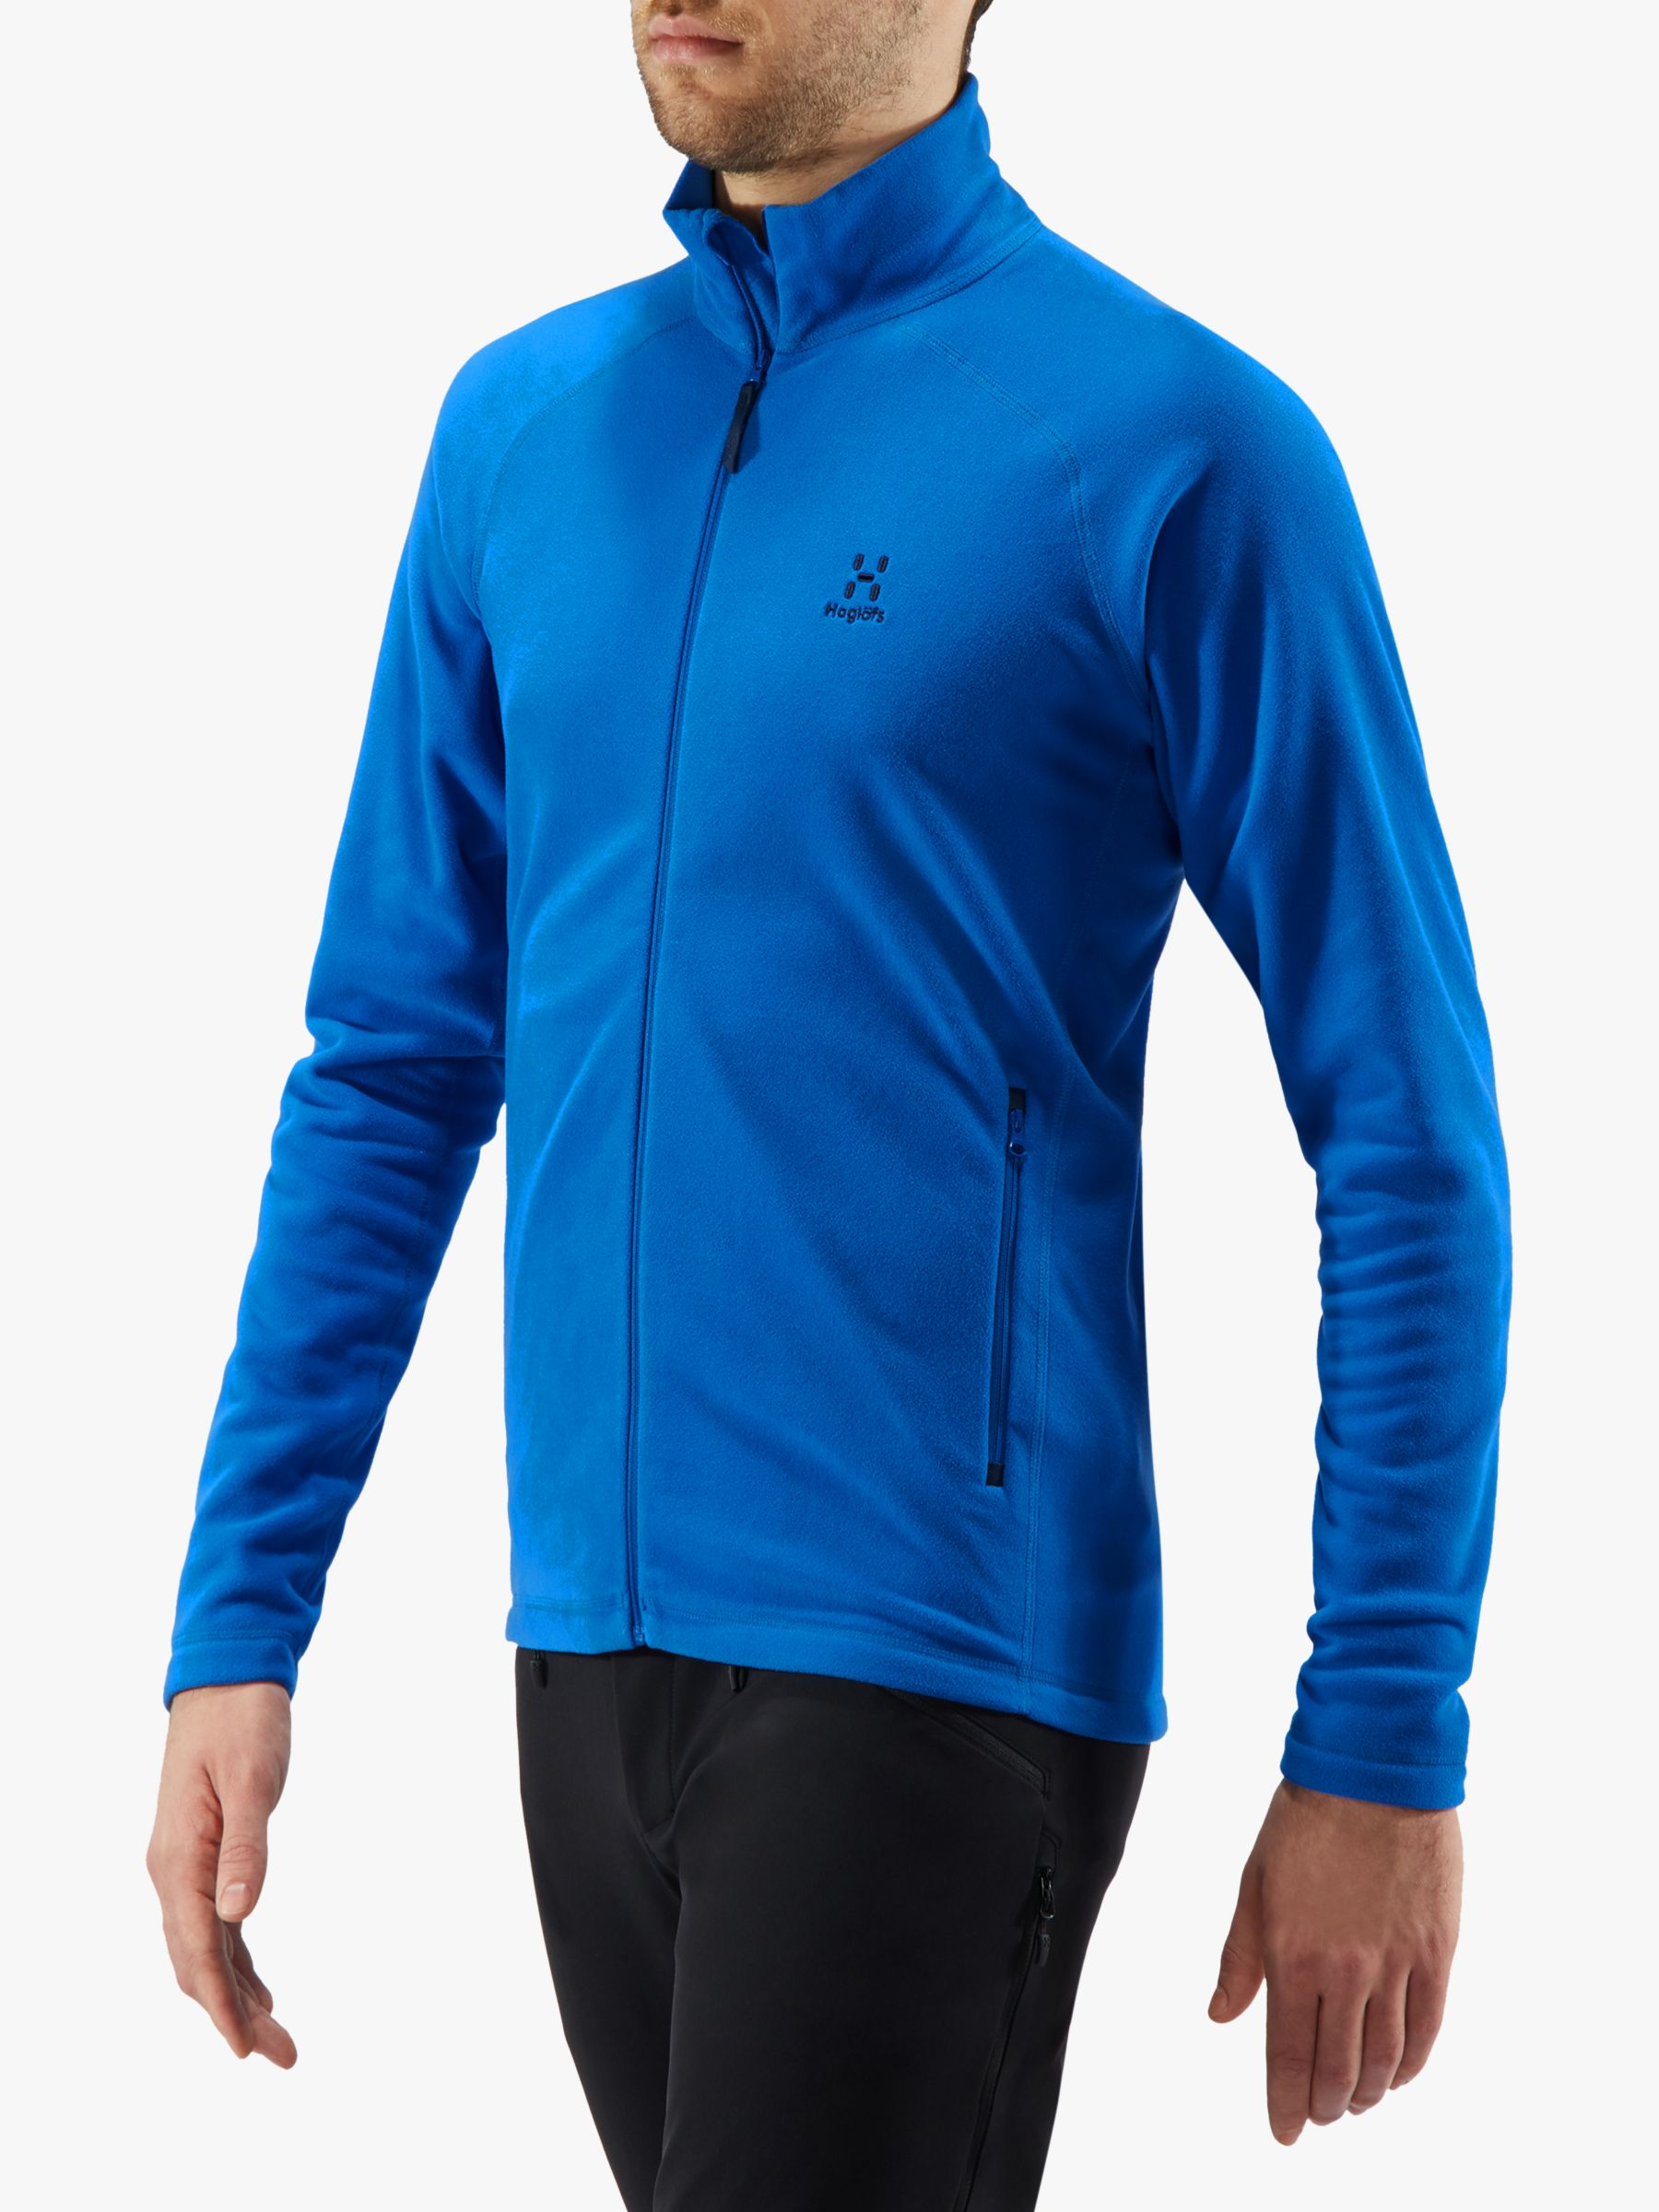 Haglofs Haglöfs Astro Men's Fleece Jacket